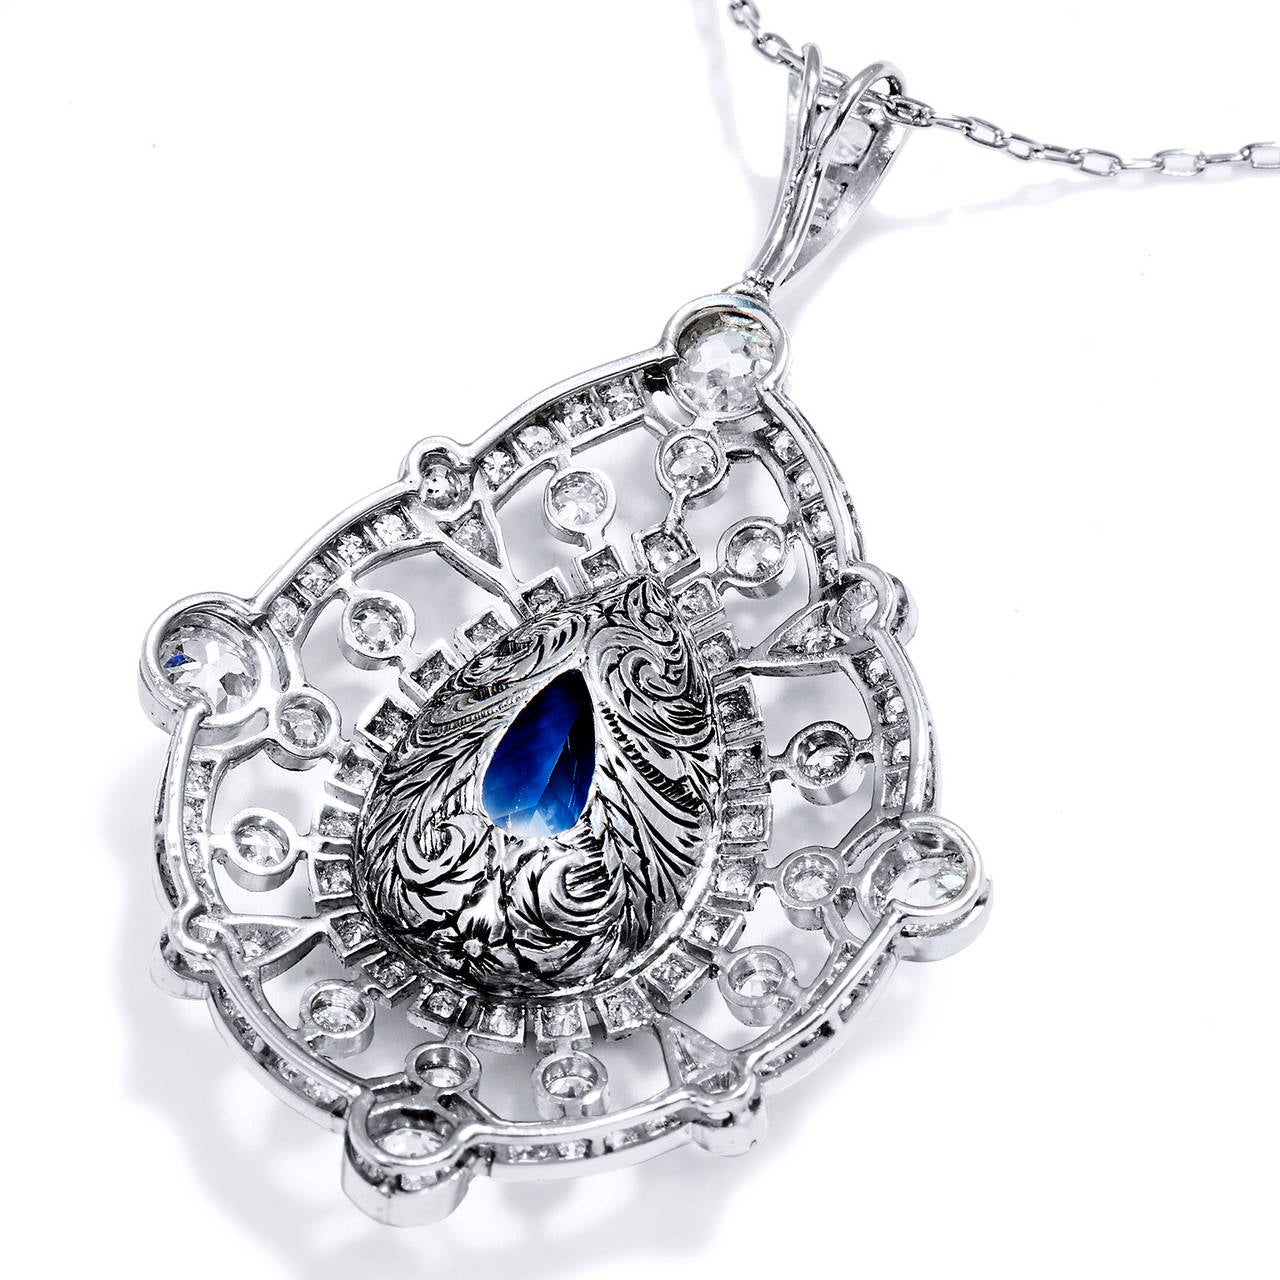 A.G.L. Certified 9.83 Carat Pear Shaped Sapphire & 3 ct Diamond Platinum Pendant In Excellent Condition For Sale In Miami, FL